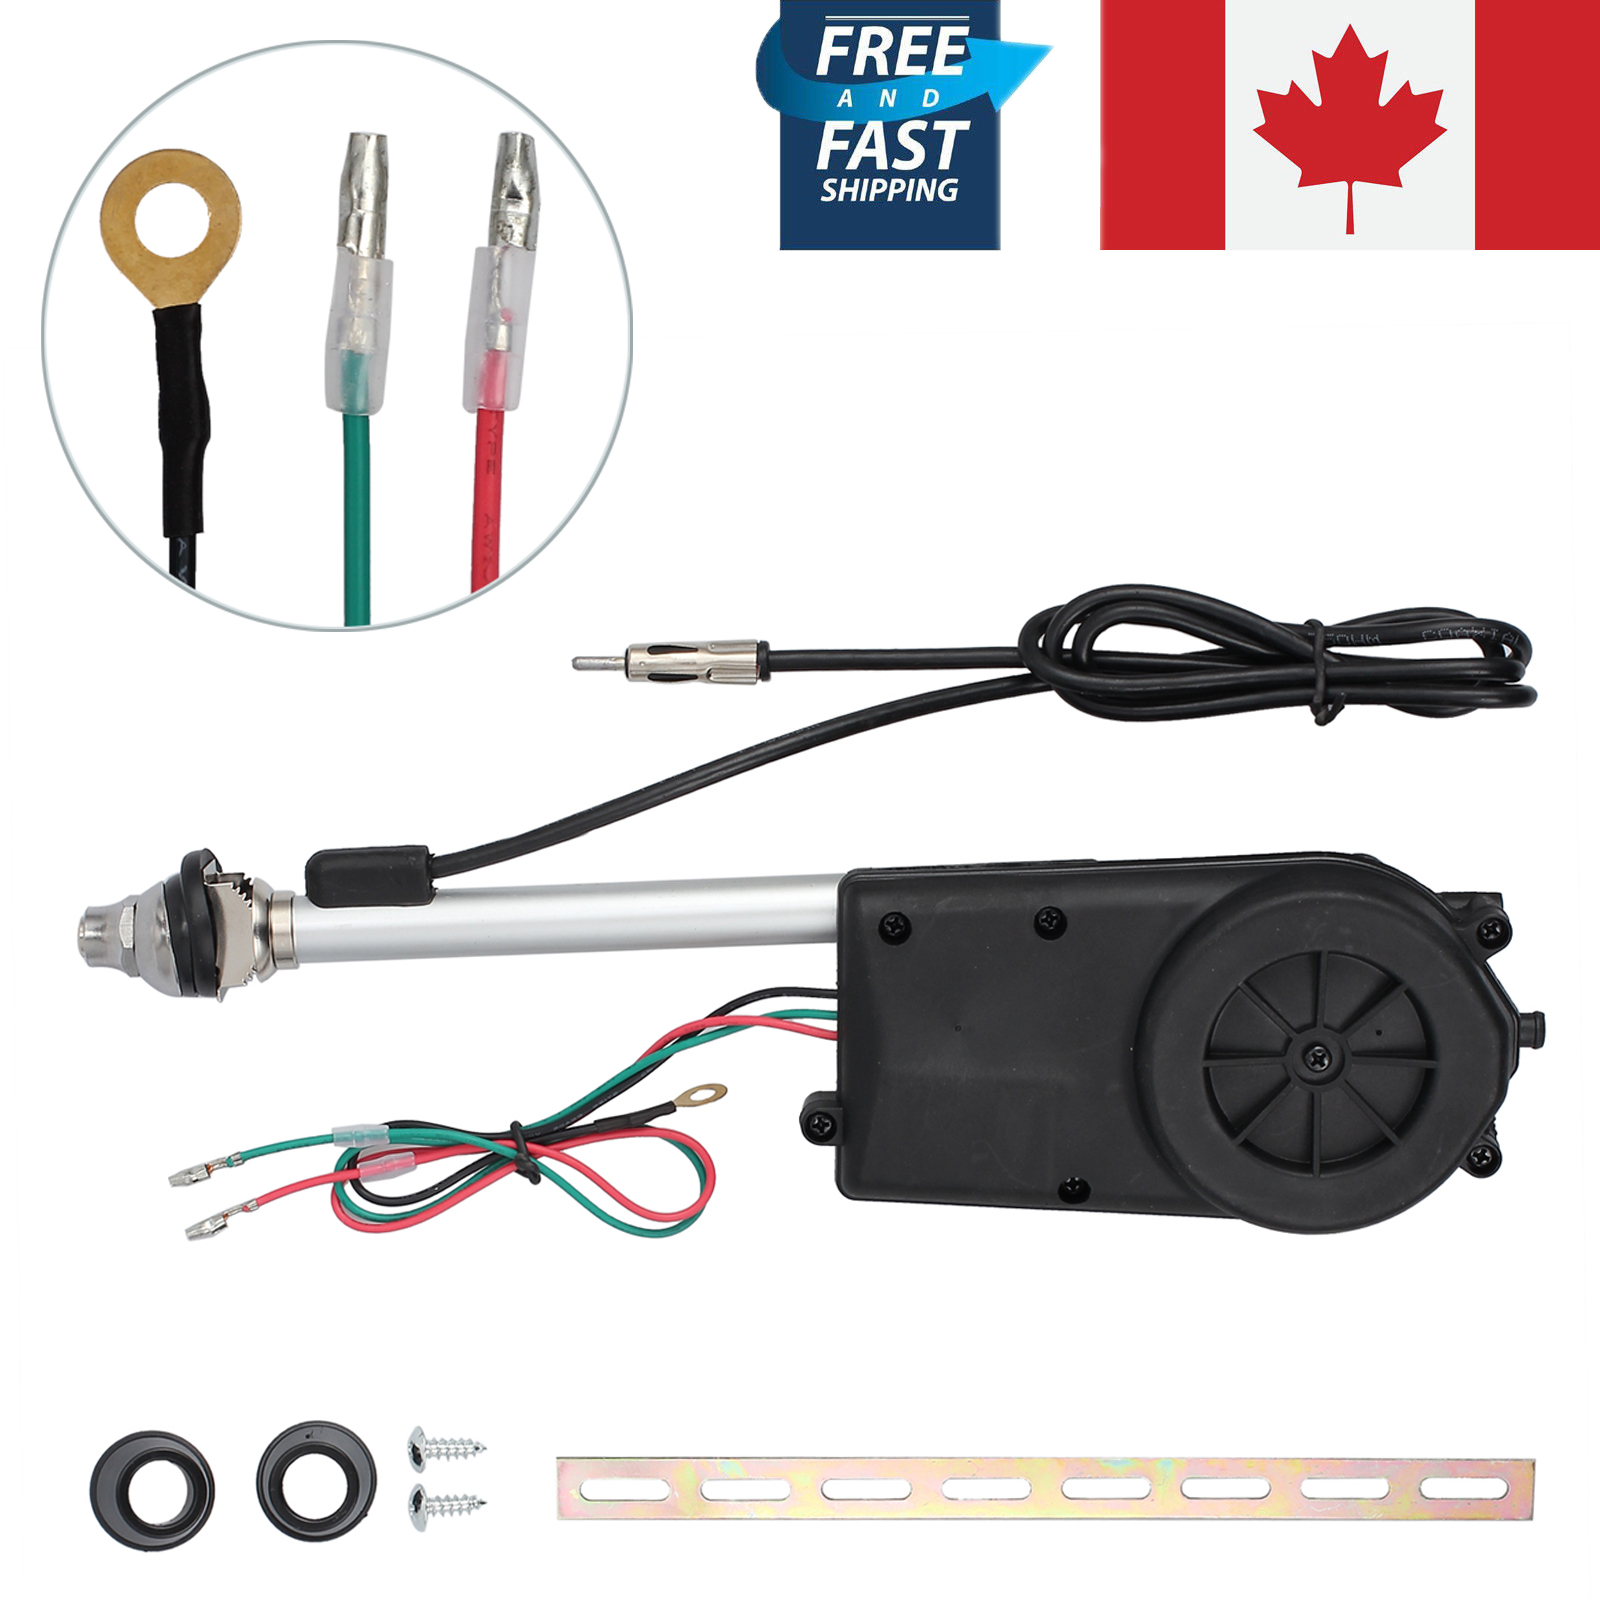 Radio Shack Electric Motor Kit: Car Antenna Electric Power Automatic Aerial Auto AM FM